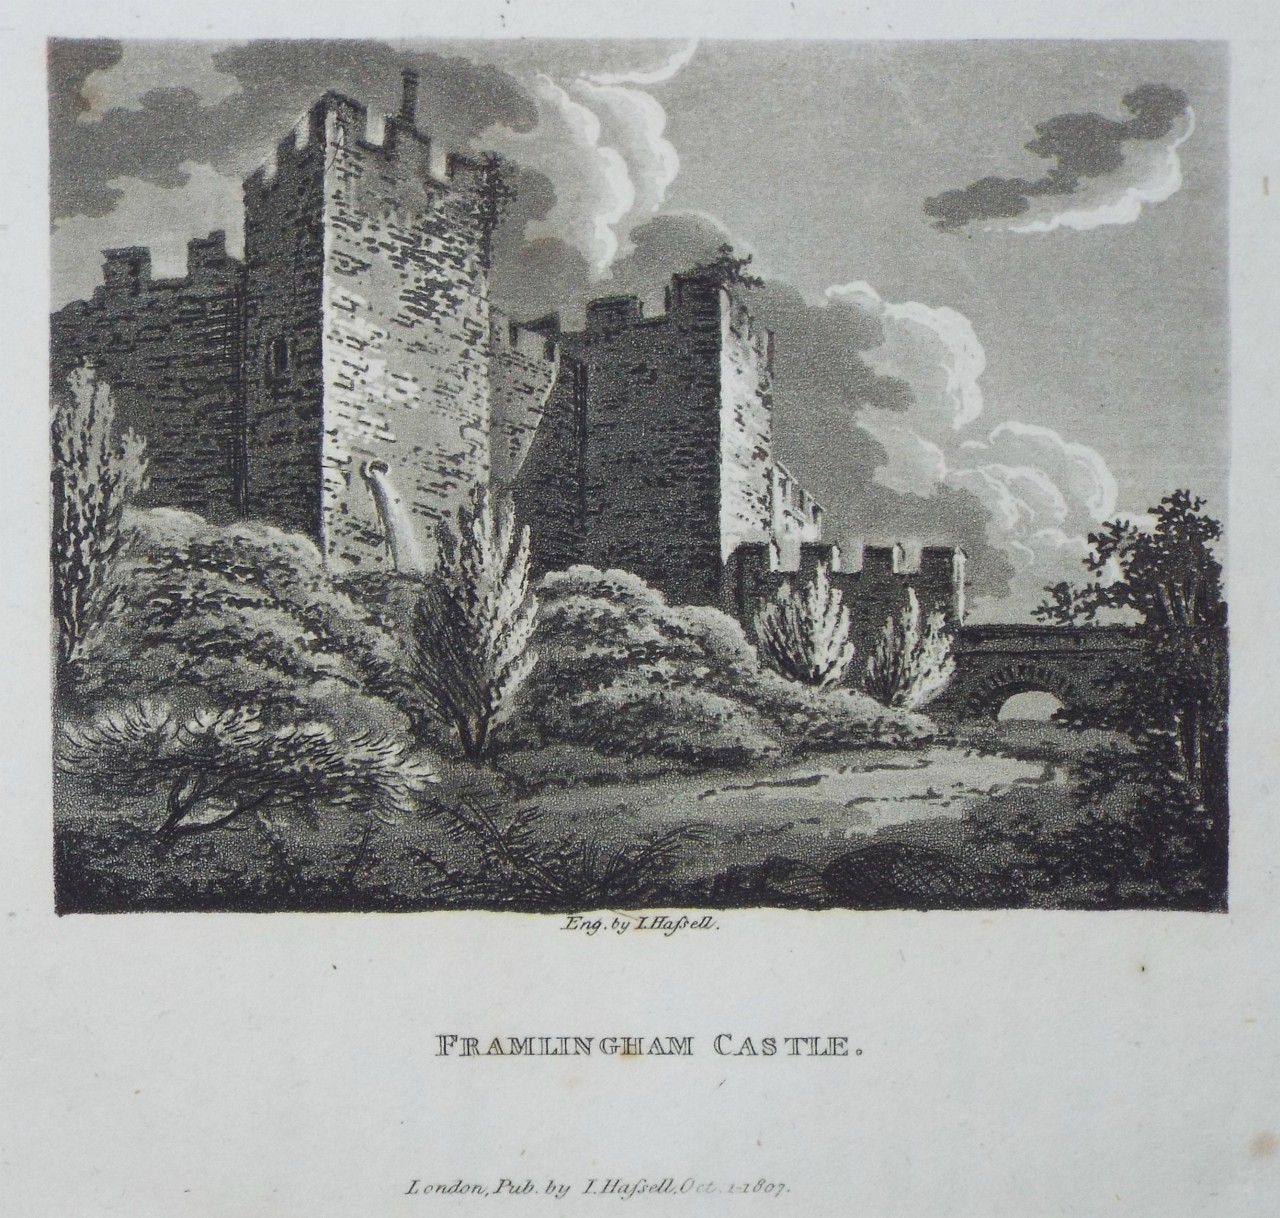 Aquatint - Framlingham Castle. - Hassell